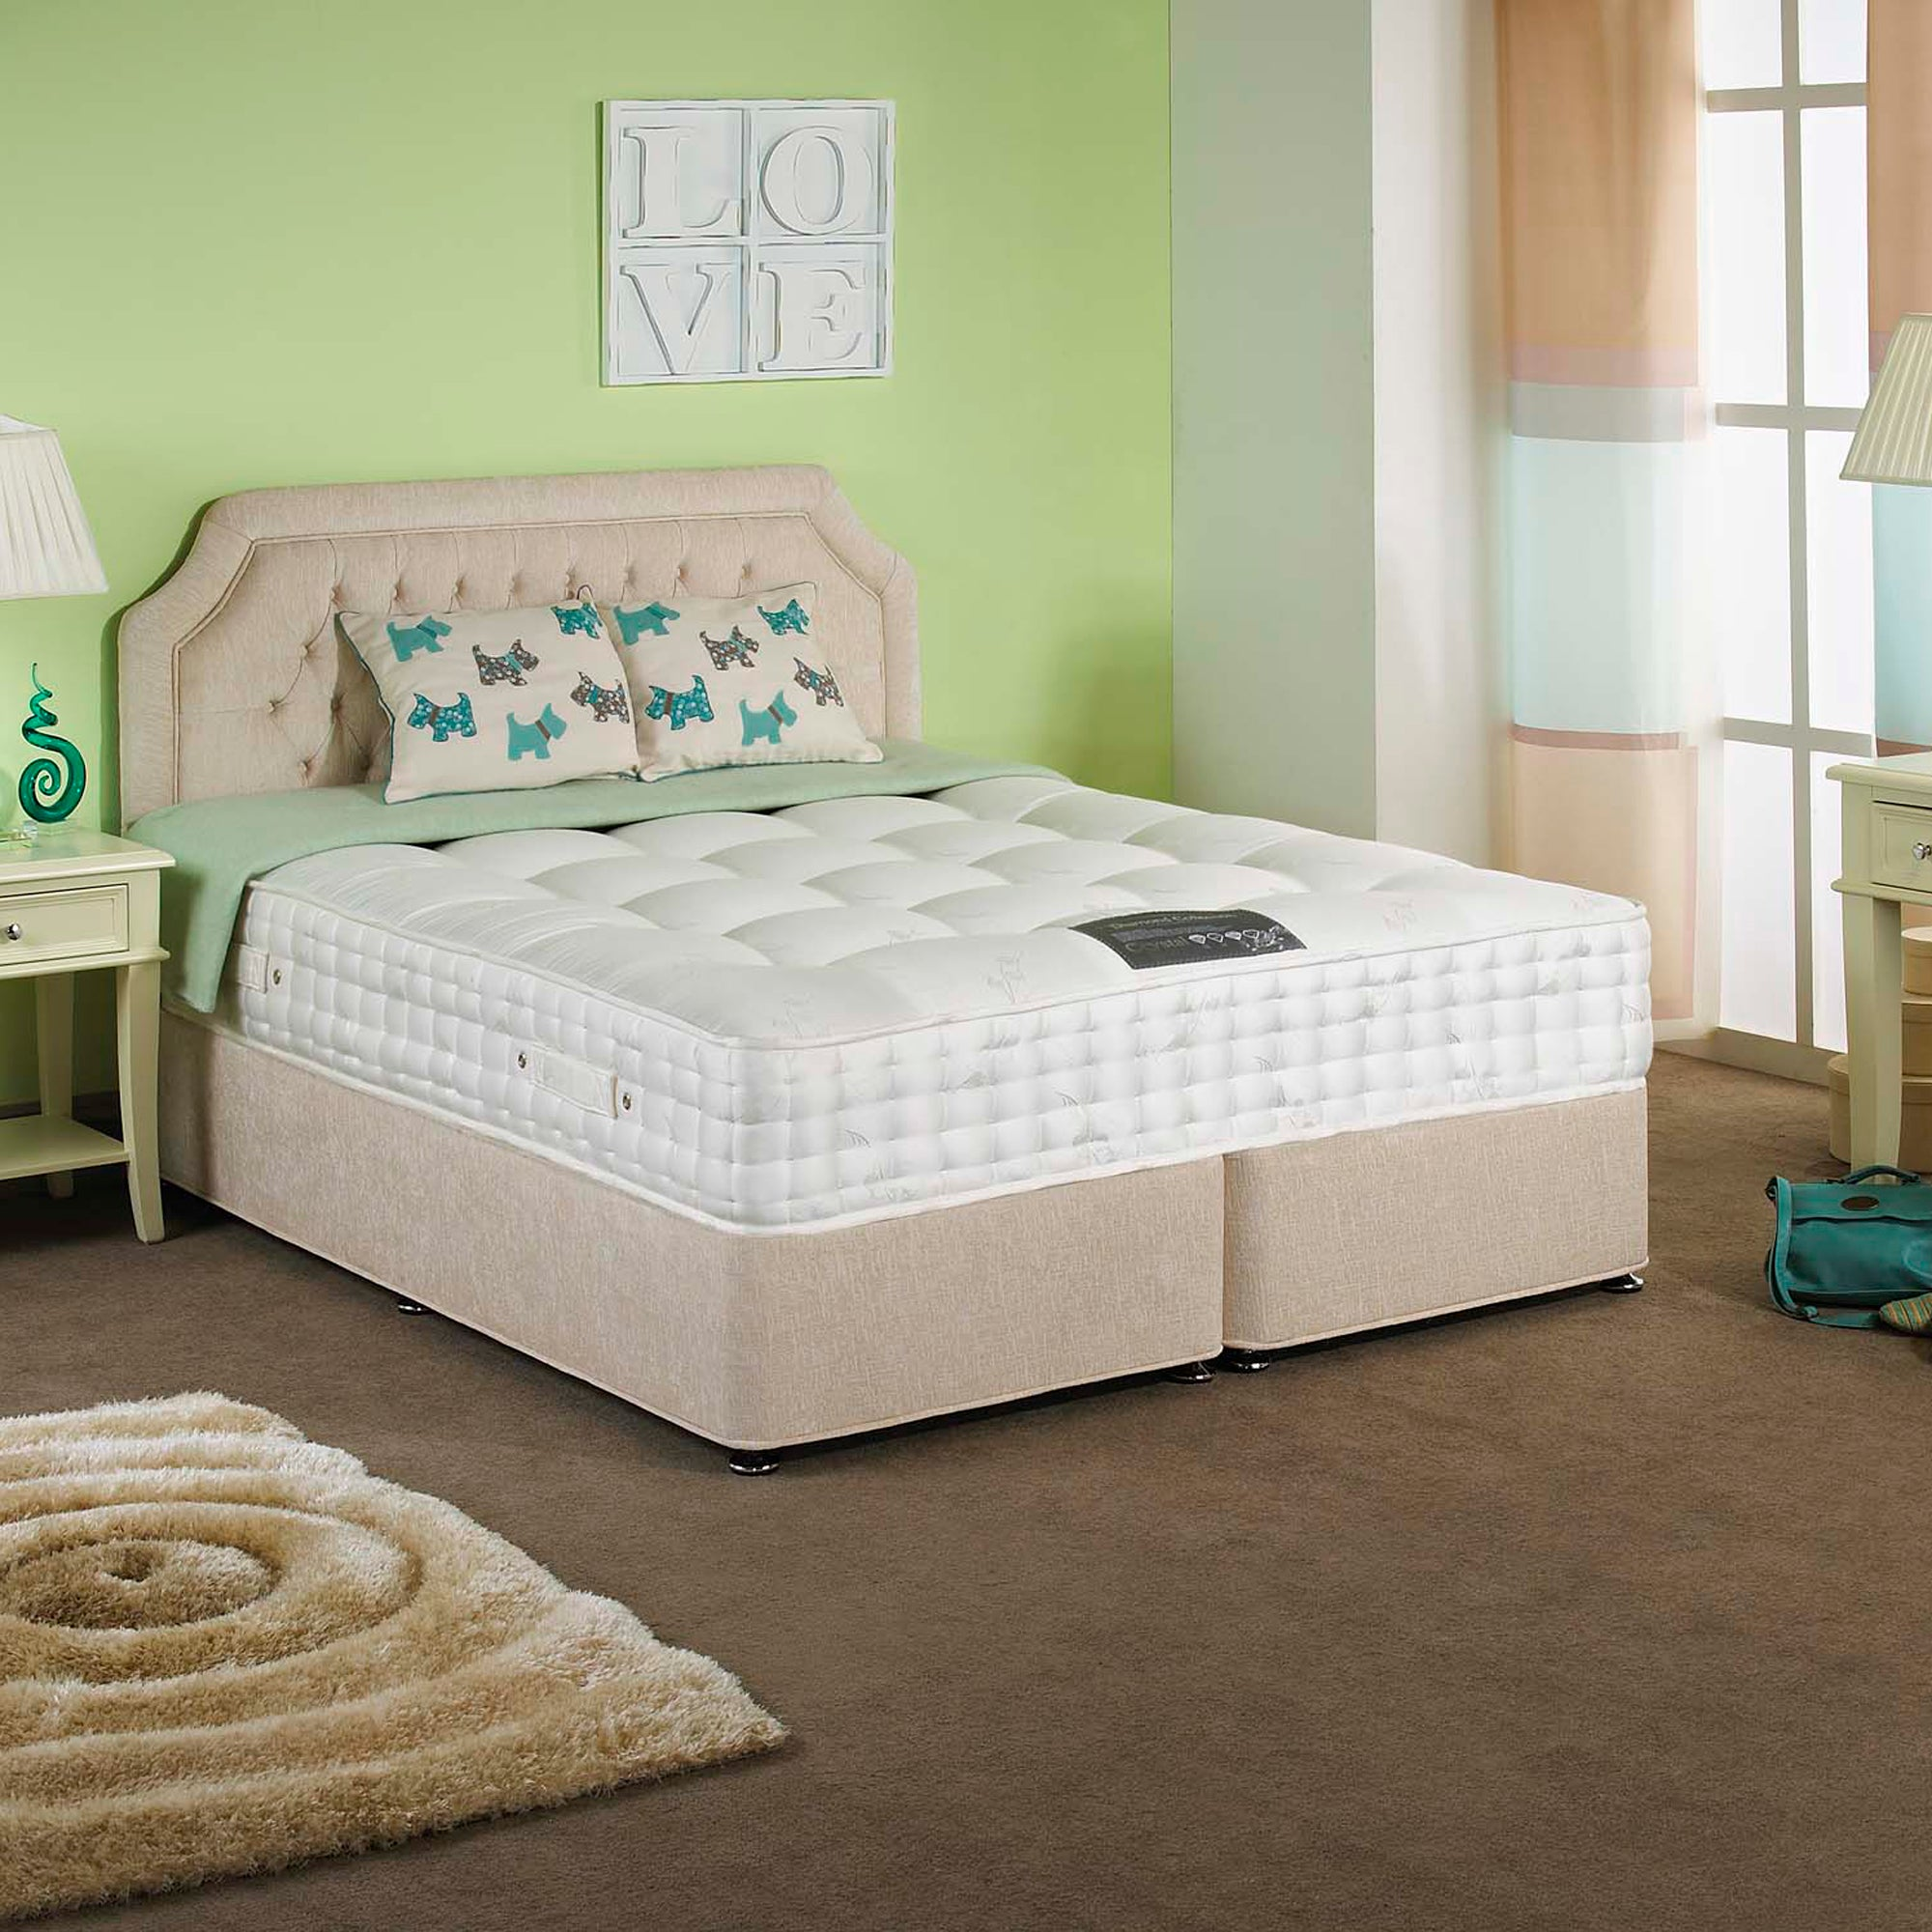 Stratford Padded Single Divan Set with 2 Drawers Right Side